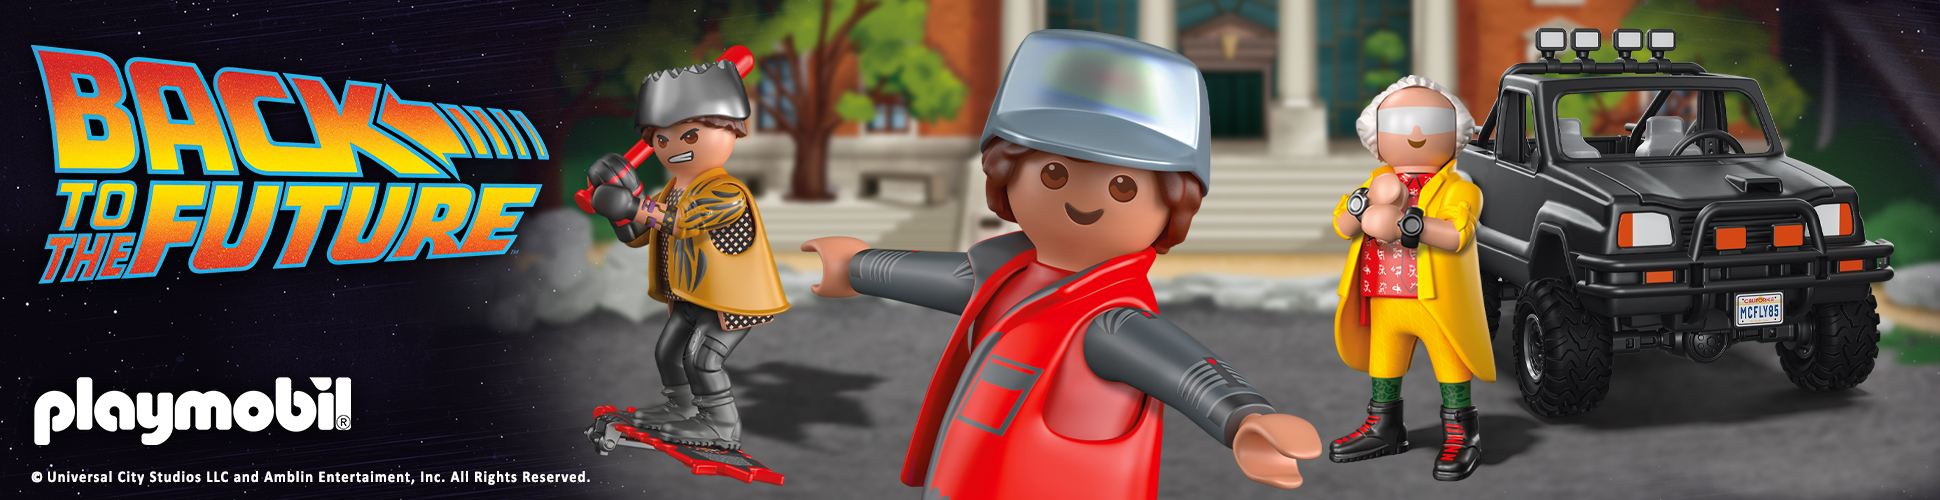 Playmobil Backtothefuture